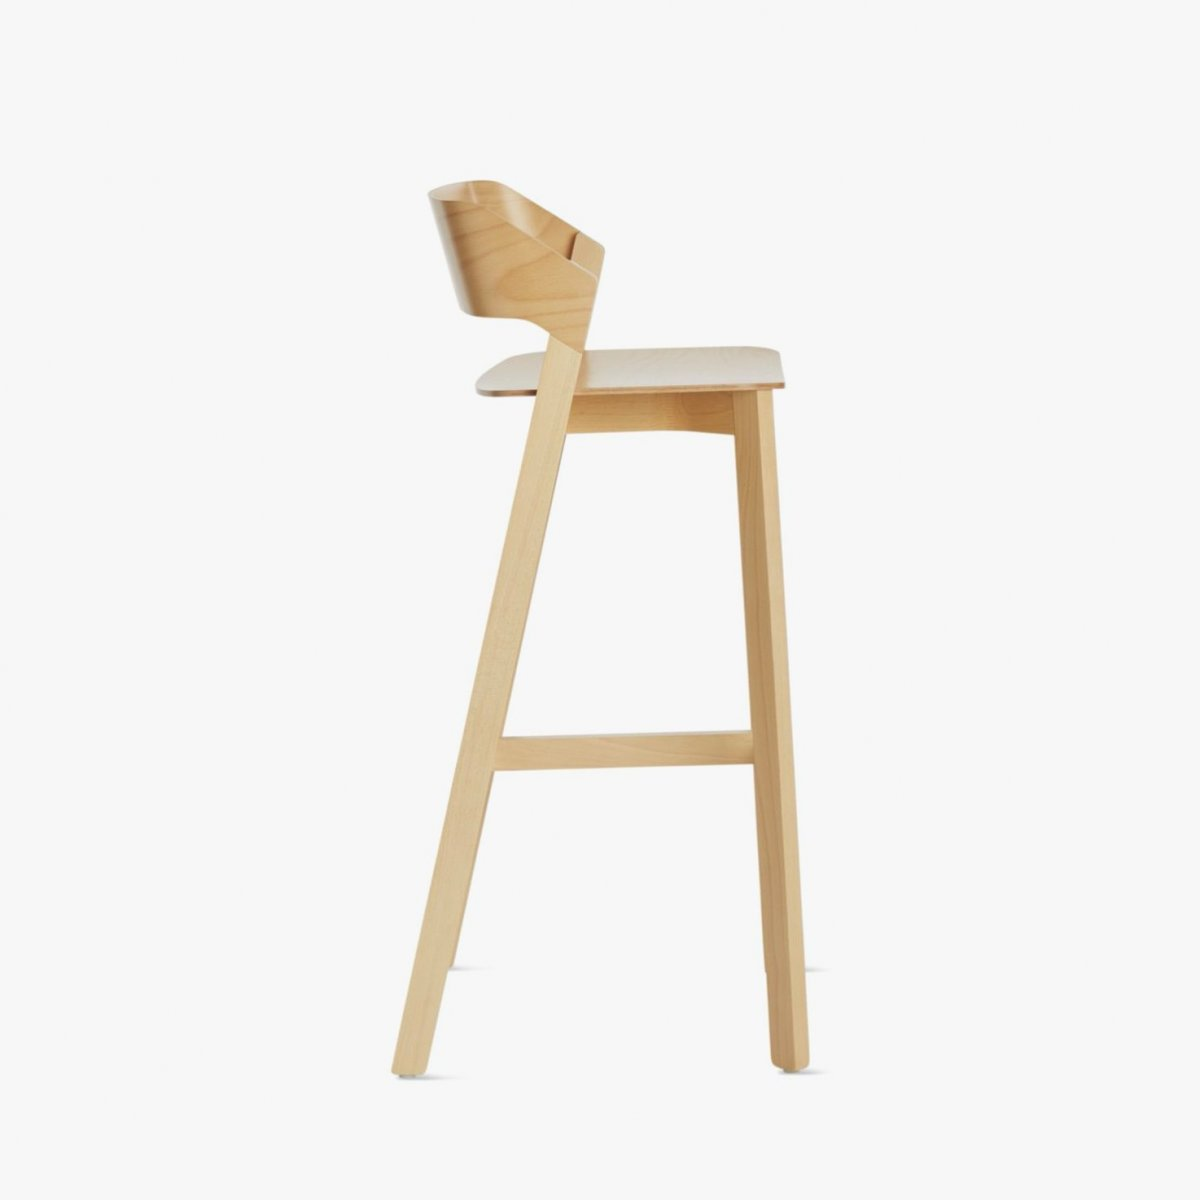 Barstool Merano, side view.